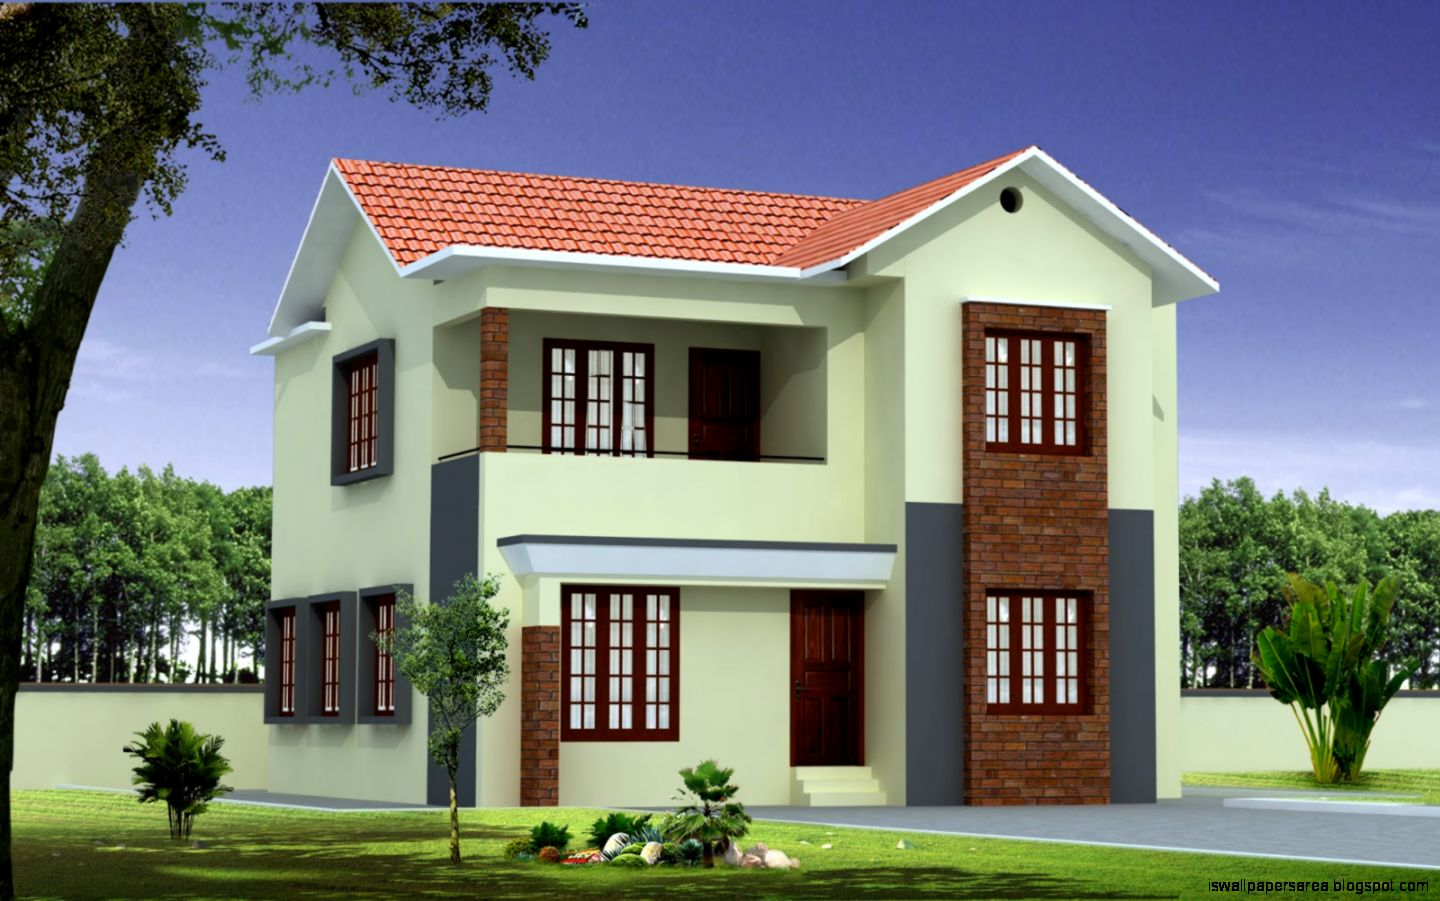 New home building designs wallpapers area for Latest home